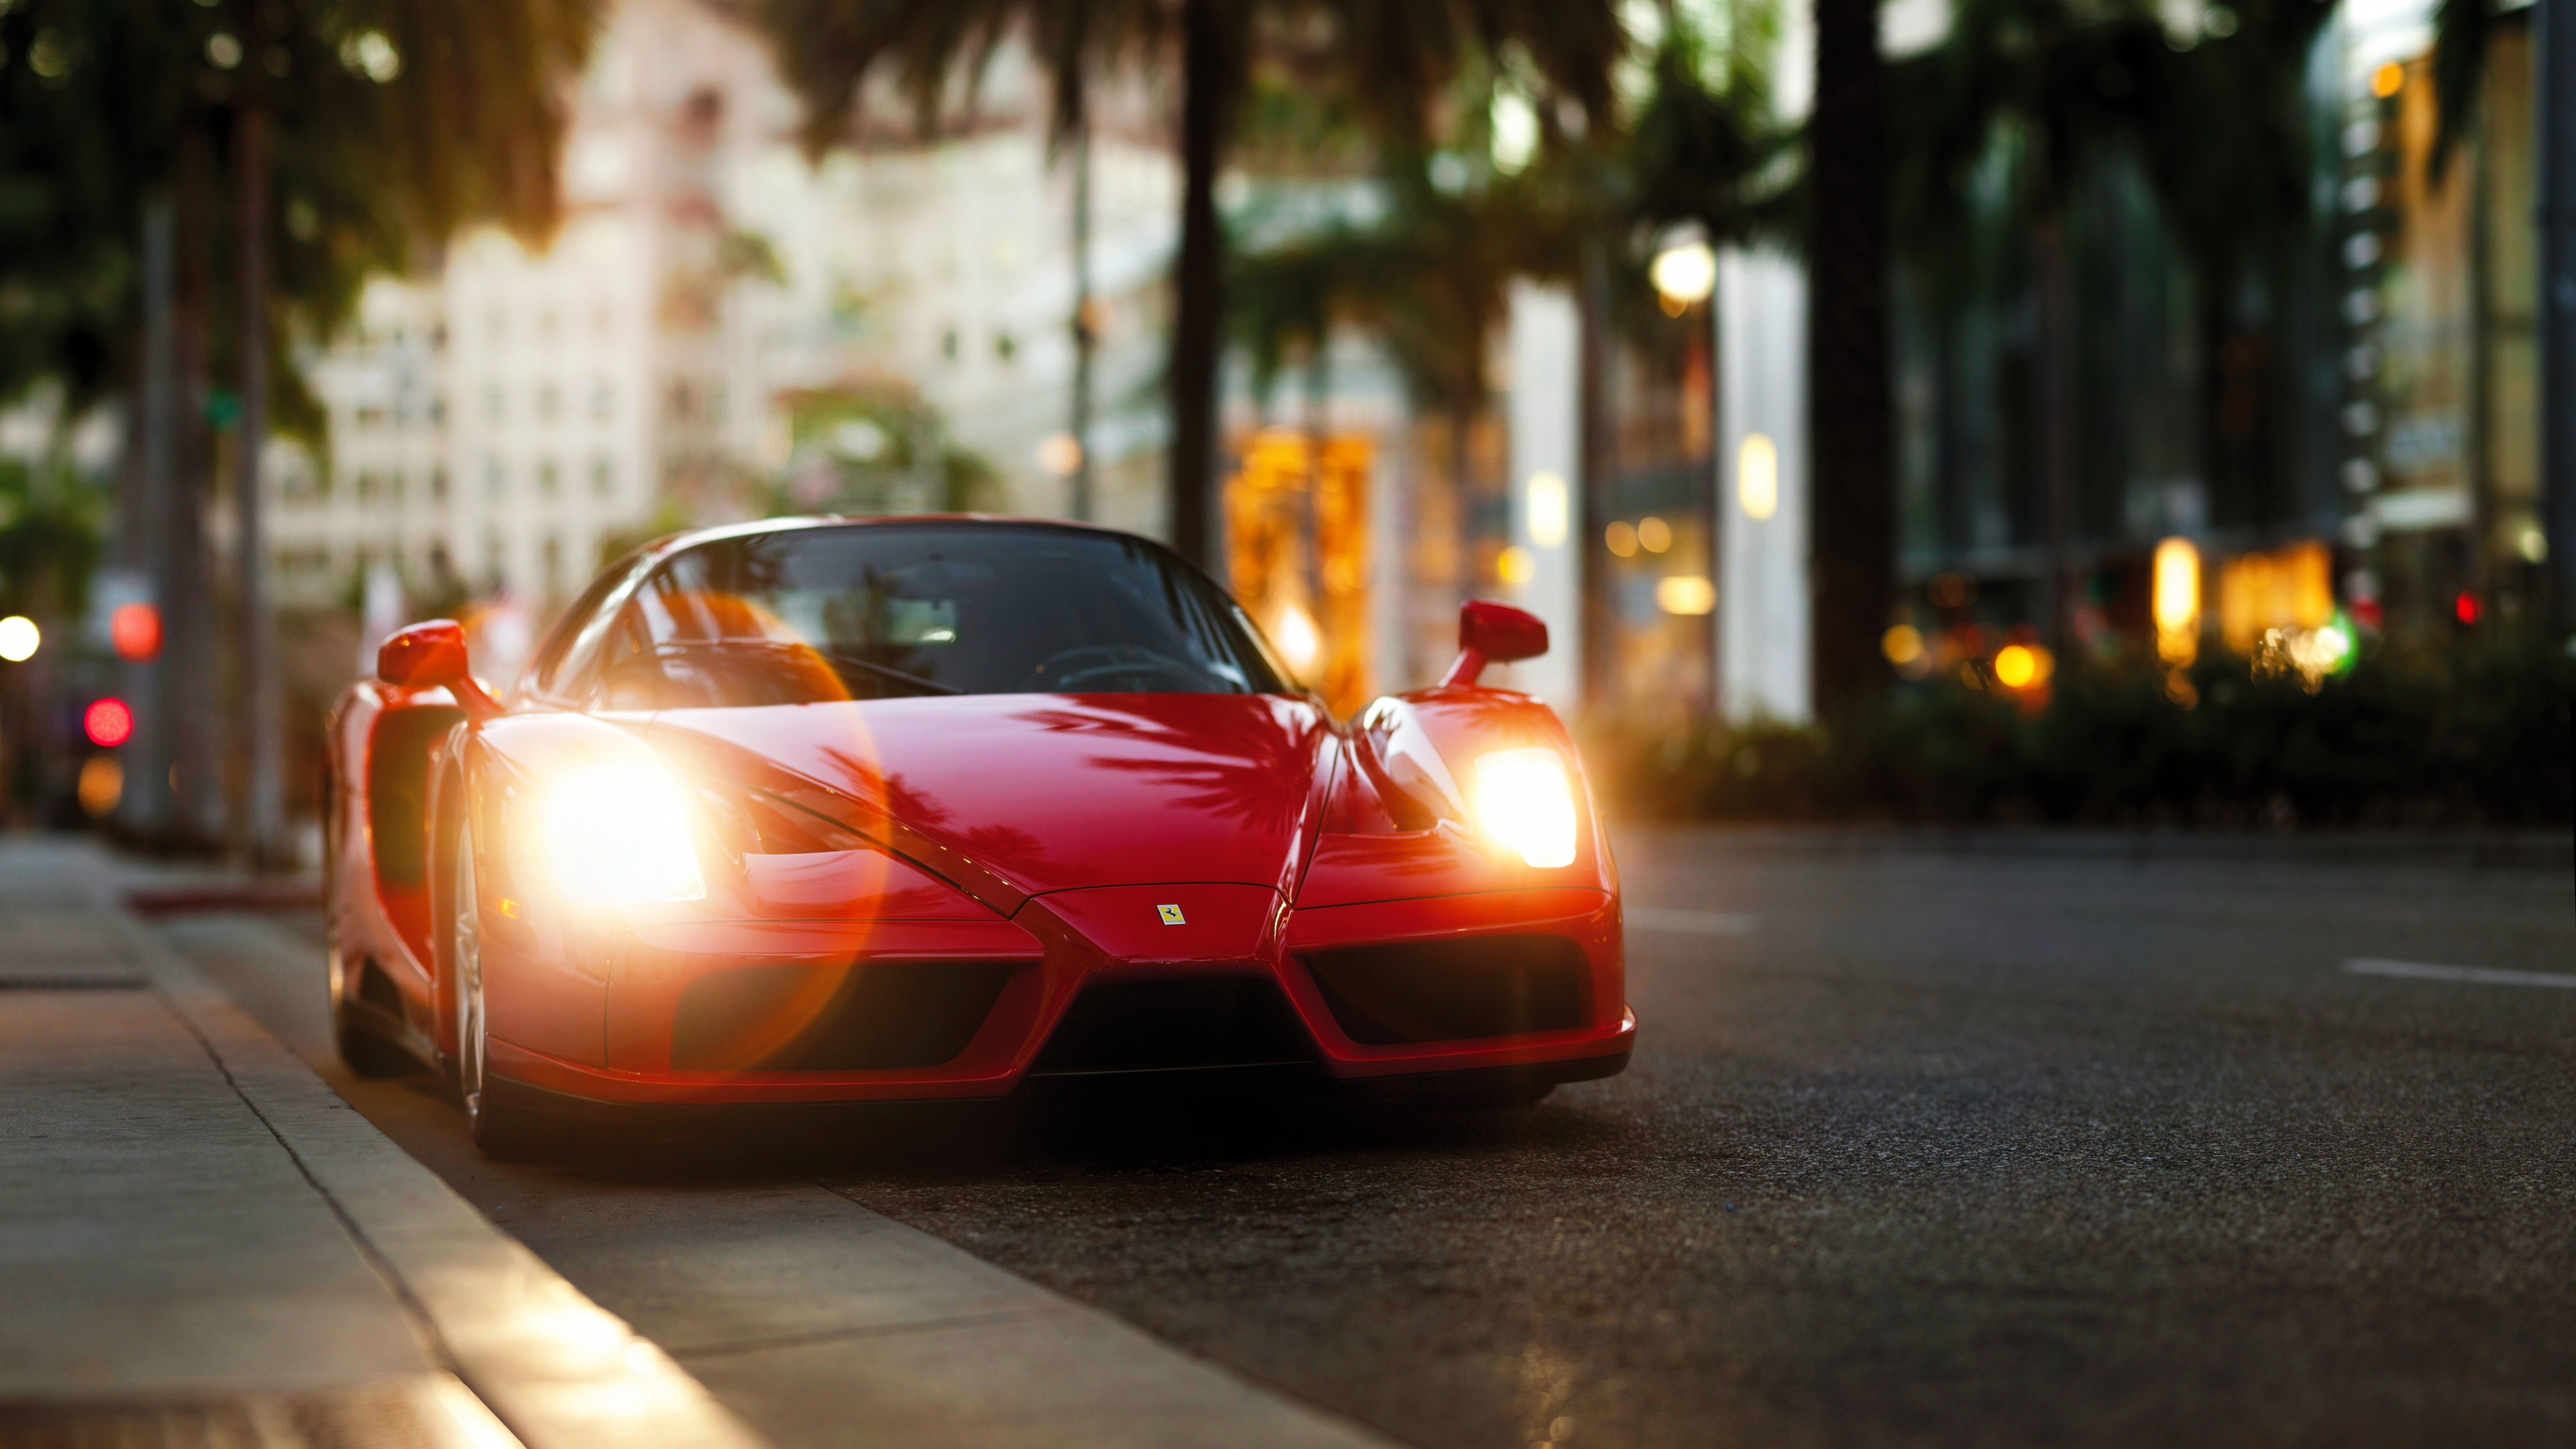 Ferrari Enzo Red, HD Cars, 4k Wallpapers, Images ...